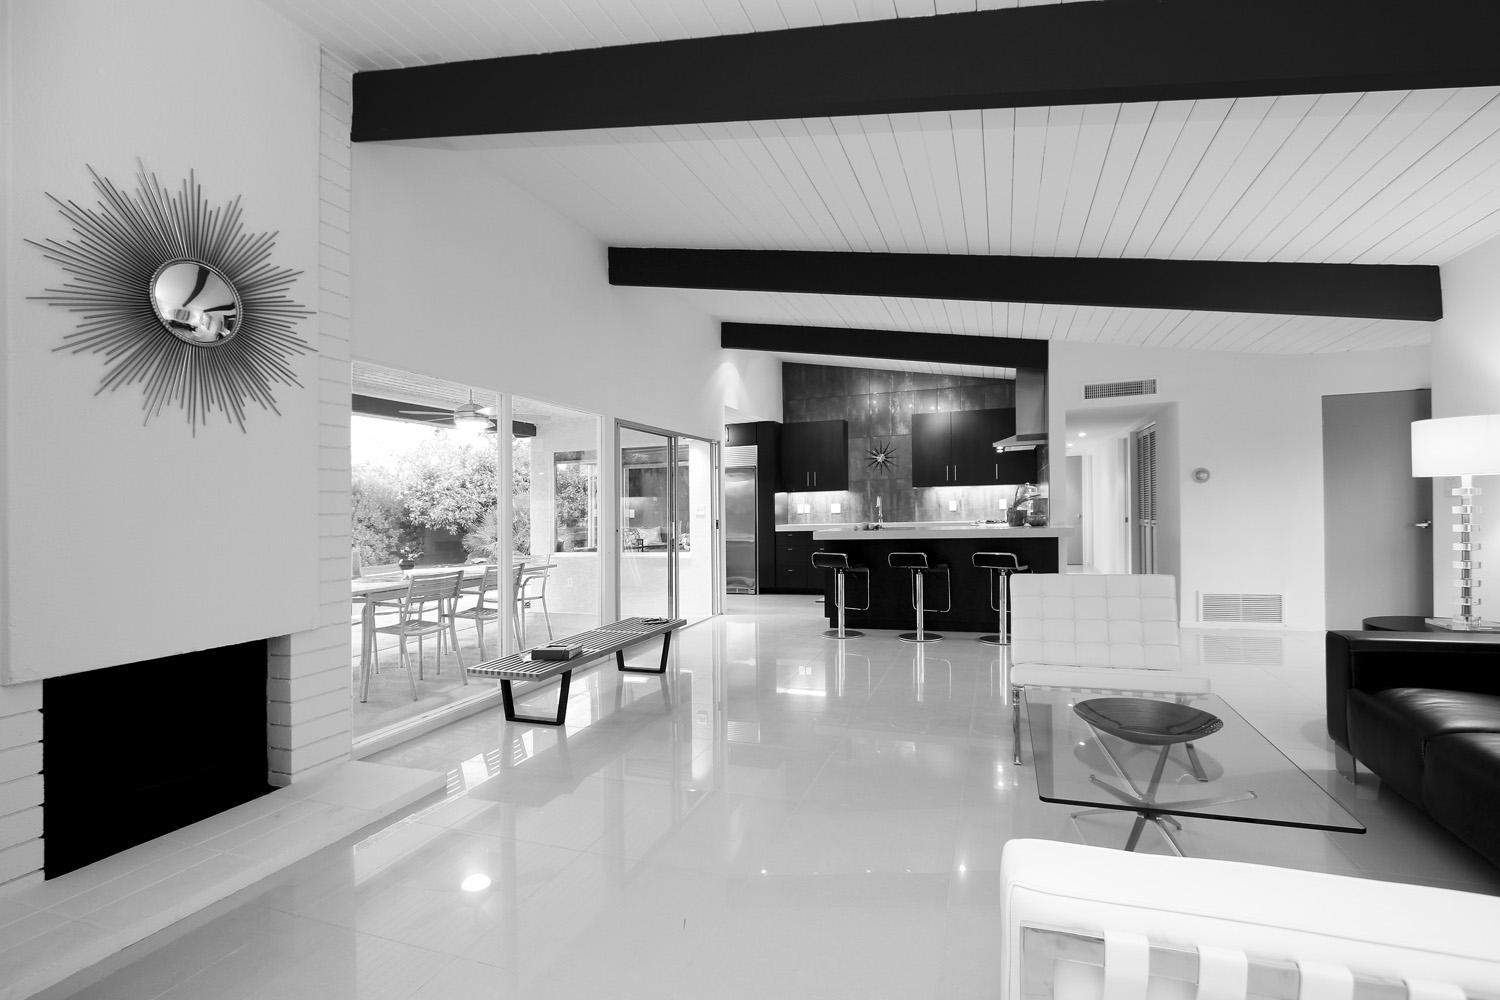 Attractive Home Designs For A Huge House: Black And White Spanish Home Design